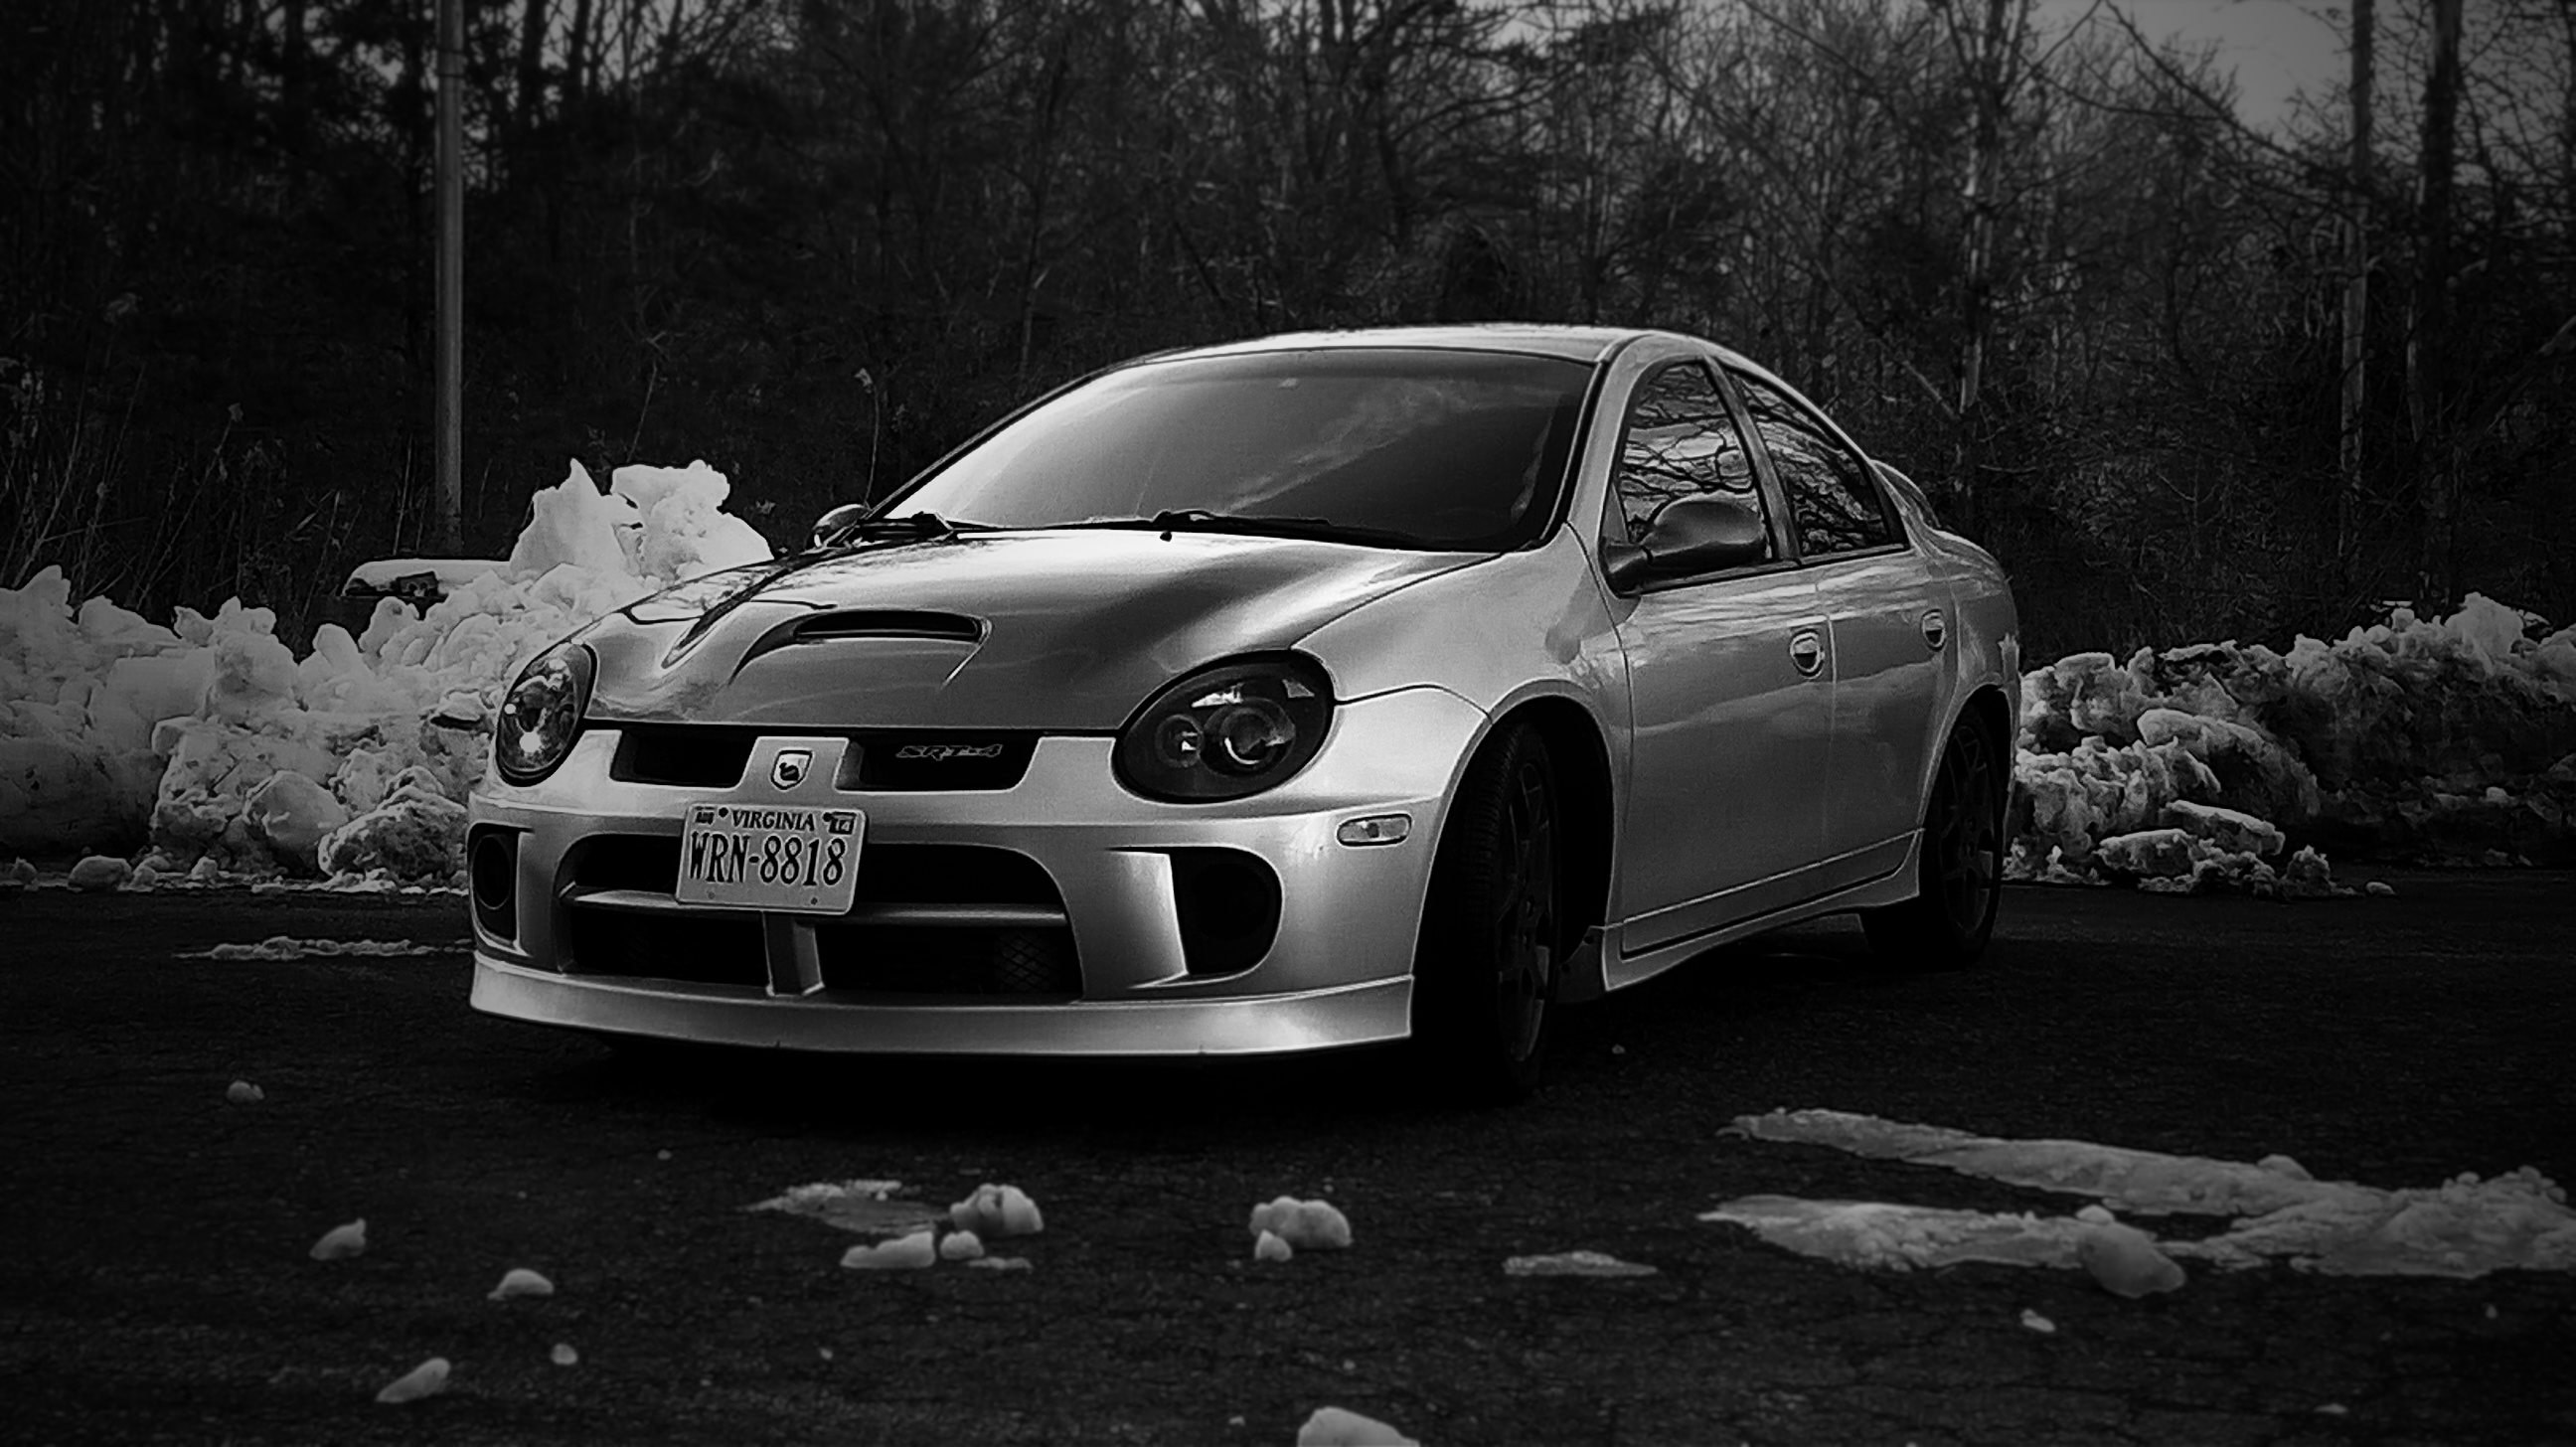 turbosrt8221 2004 Dodge Neon